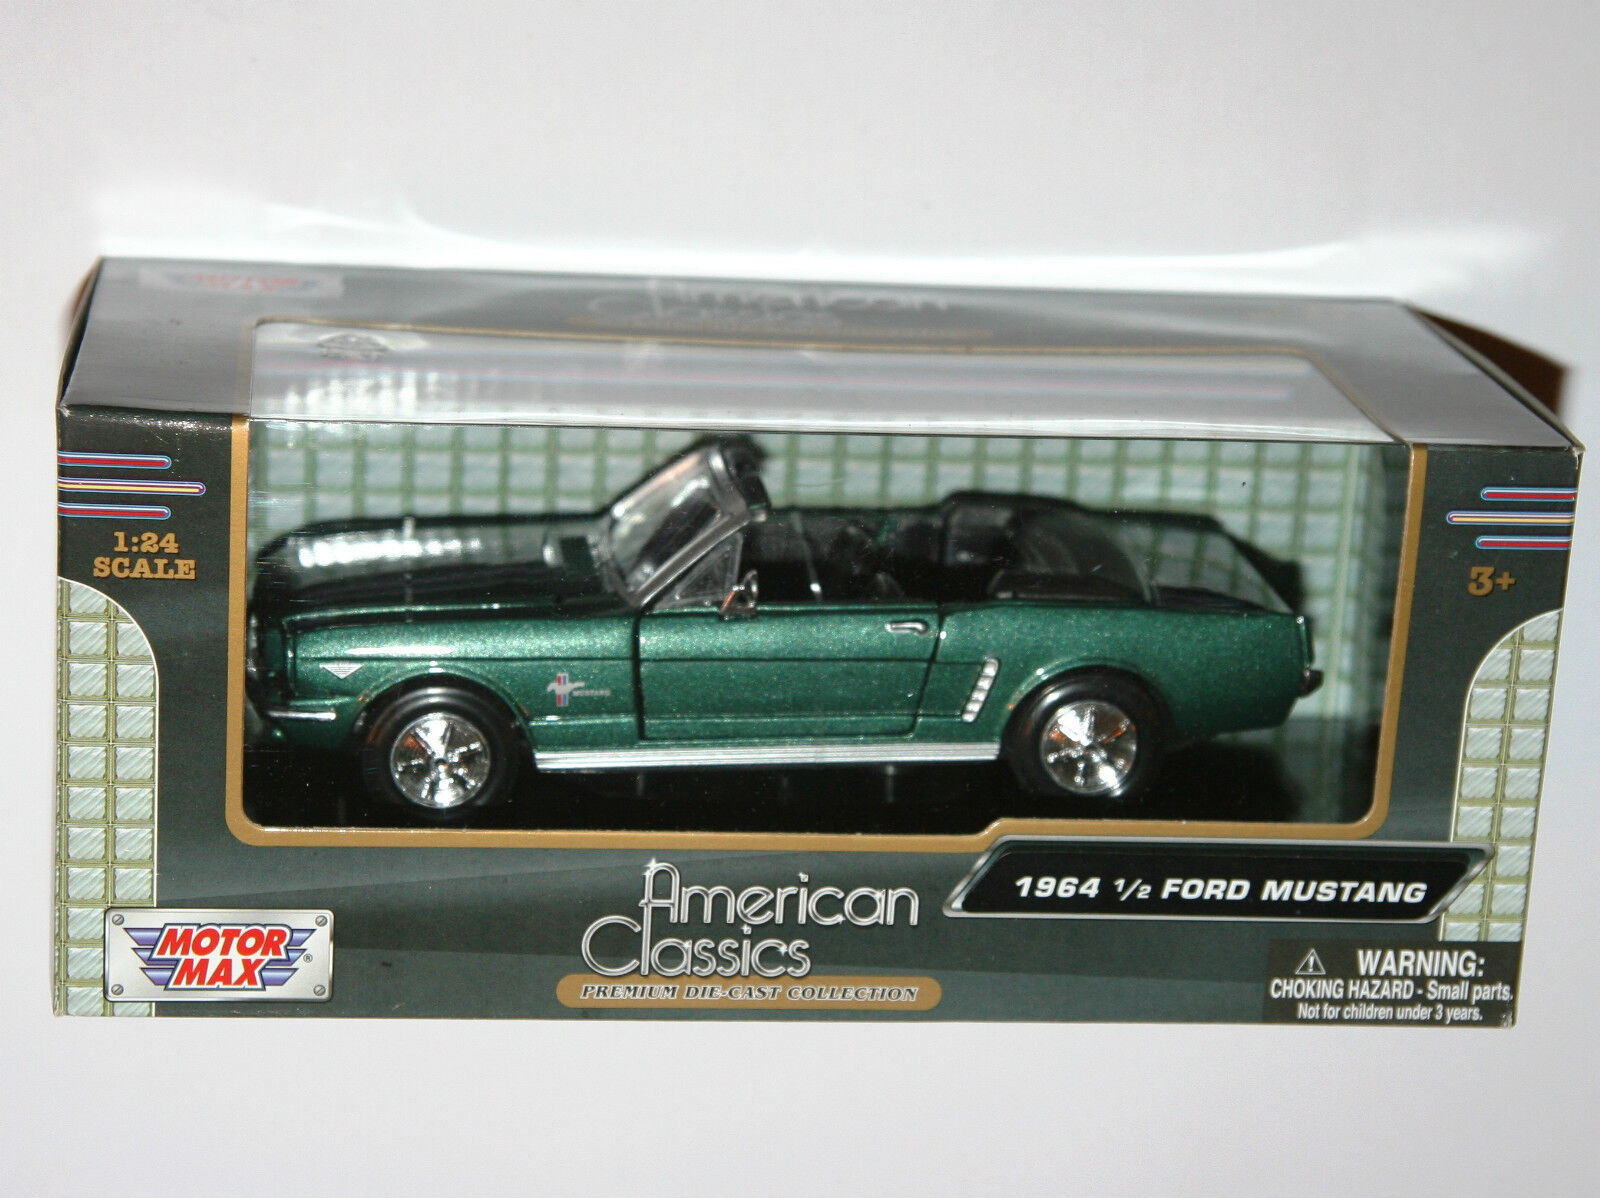 Motor Max - 1964 FORD MUSTANG Congreenible (Green) - Model Scale 1 24